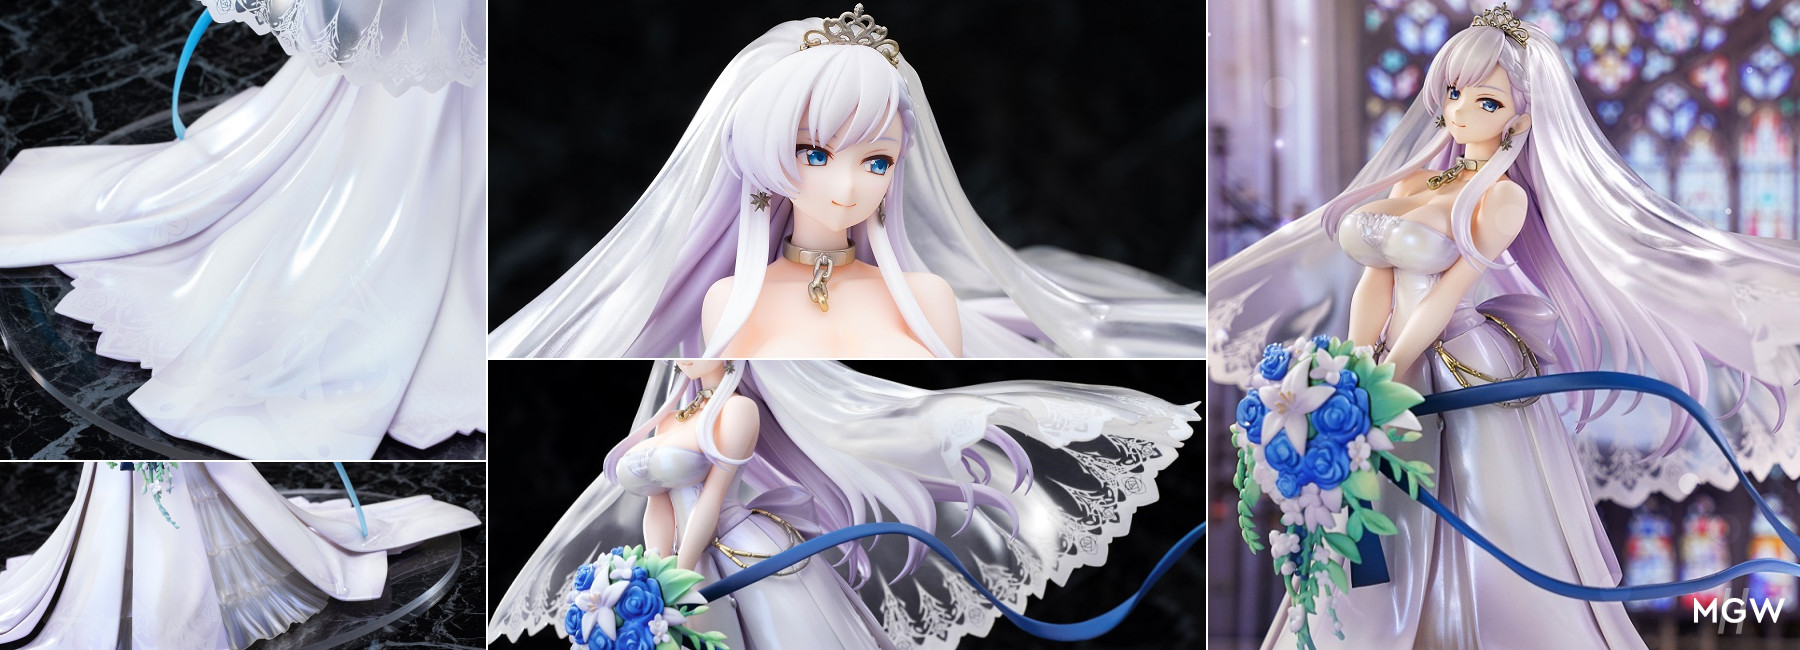 Azur Lane Belfast The Pledge of Claddagh ver. by HobbyMax Japan